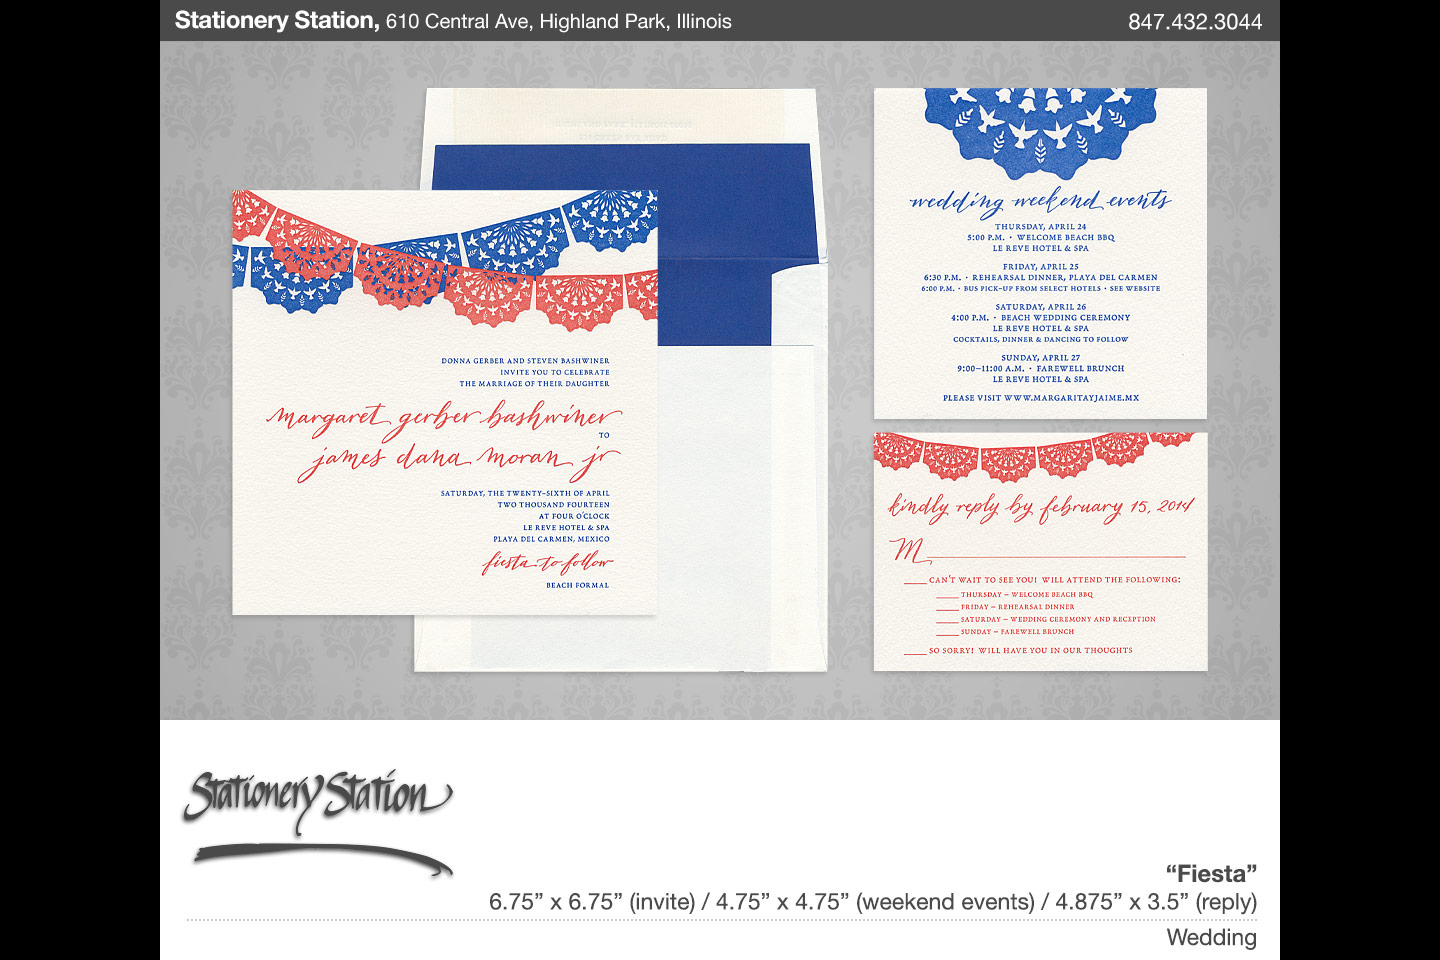 a sample stationery station enlargement of a wedding invitation suite called Fiesta, scanned and digitally arranged by 4d, inc